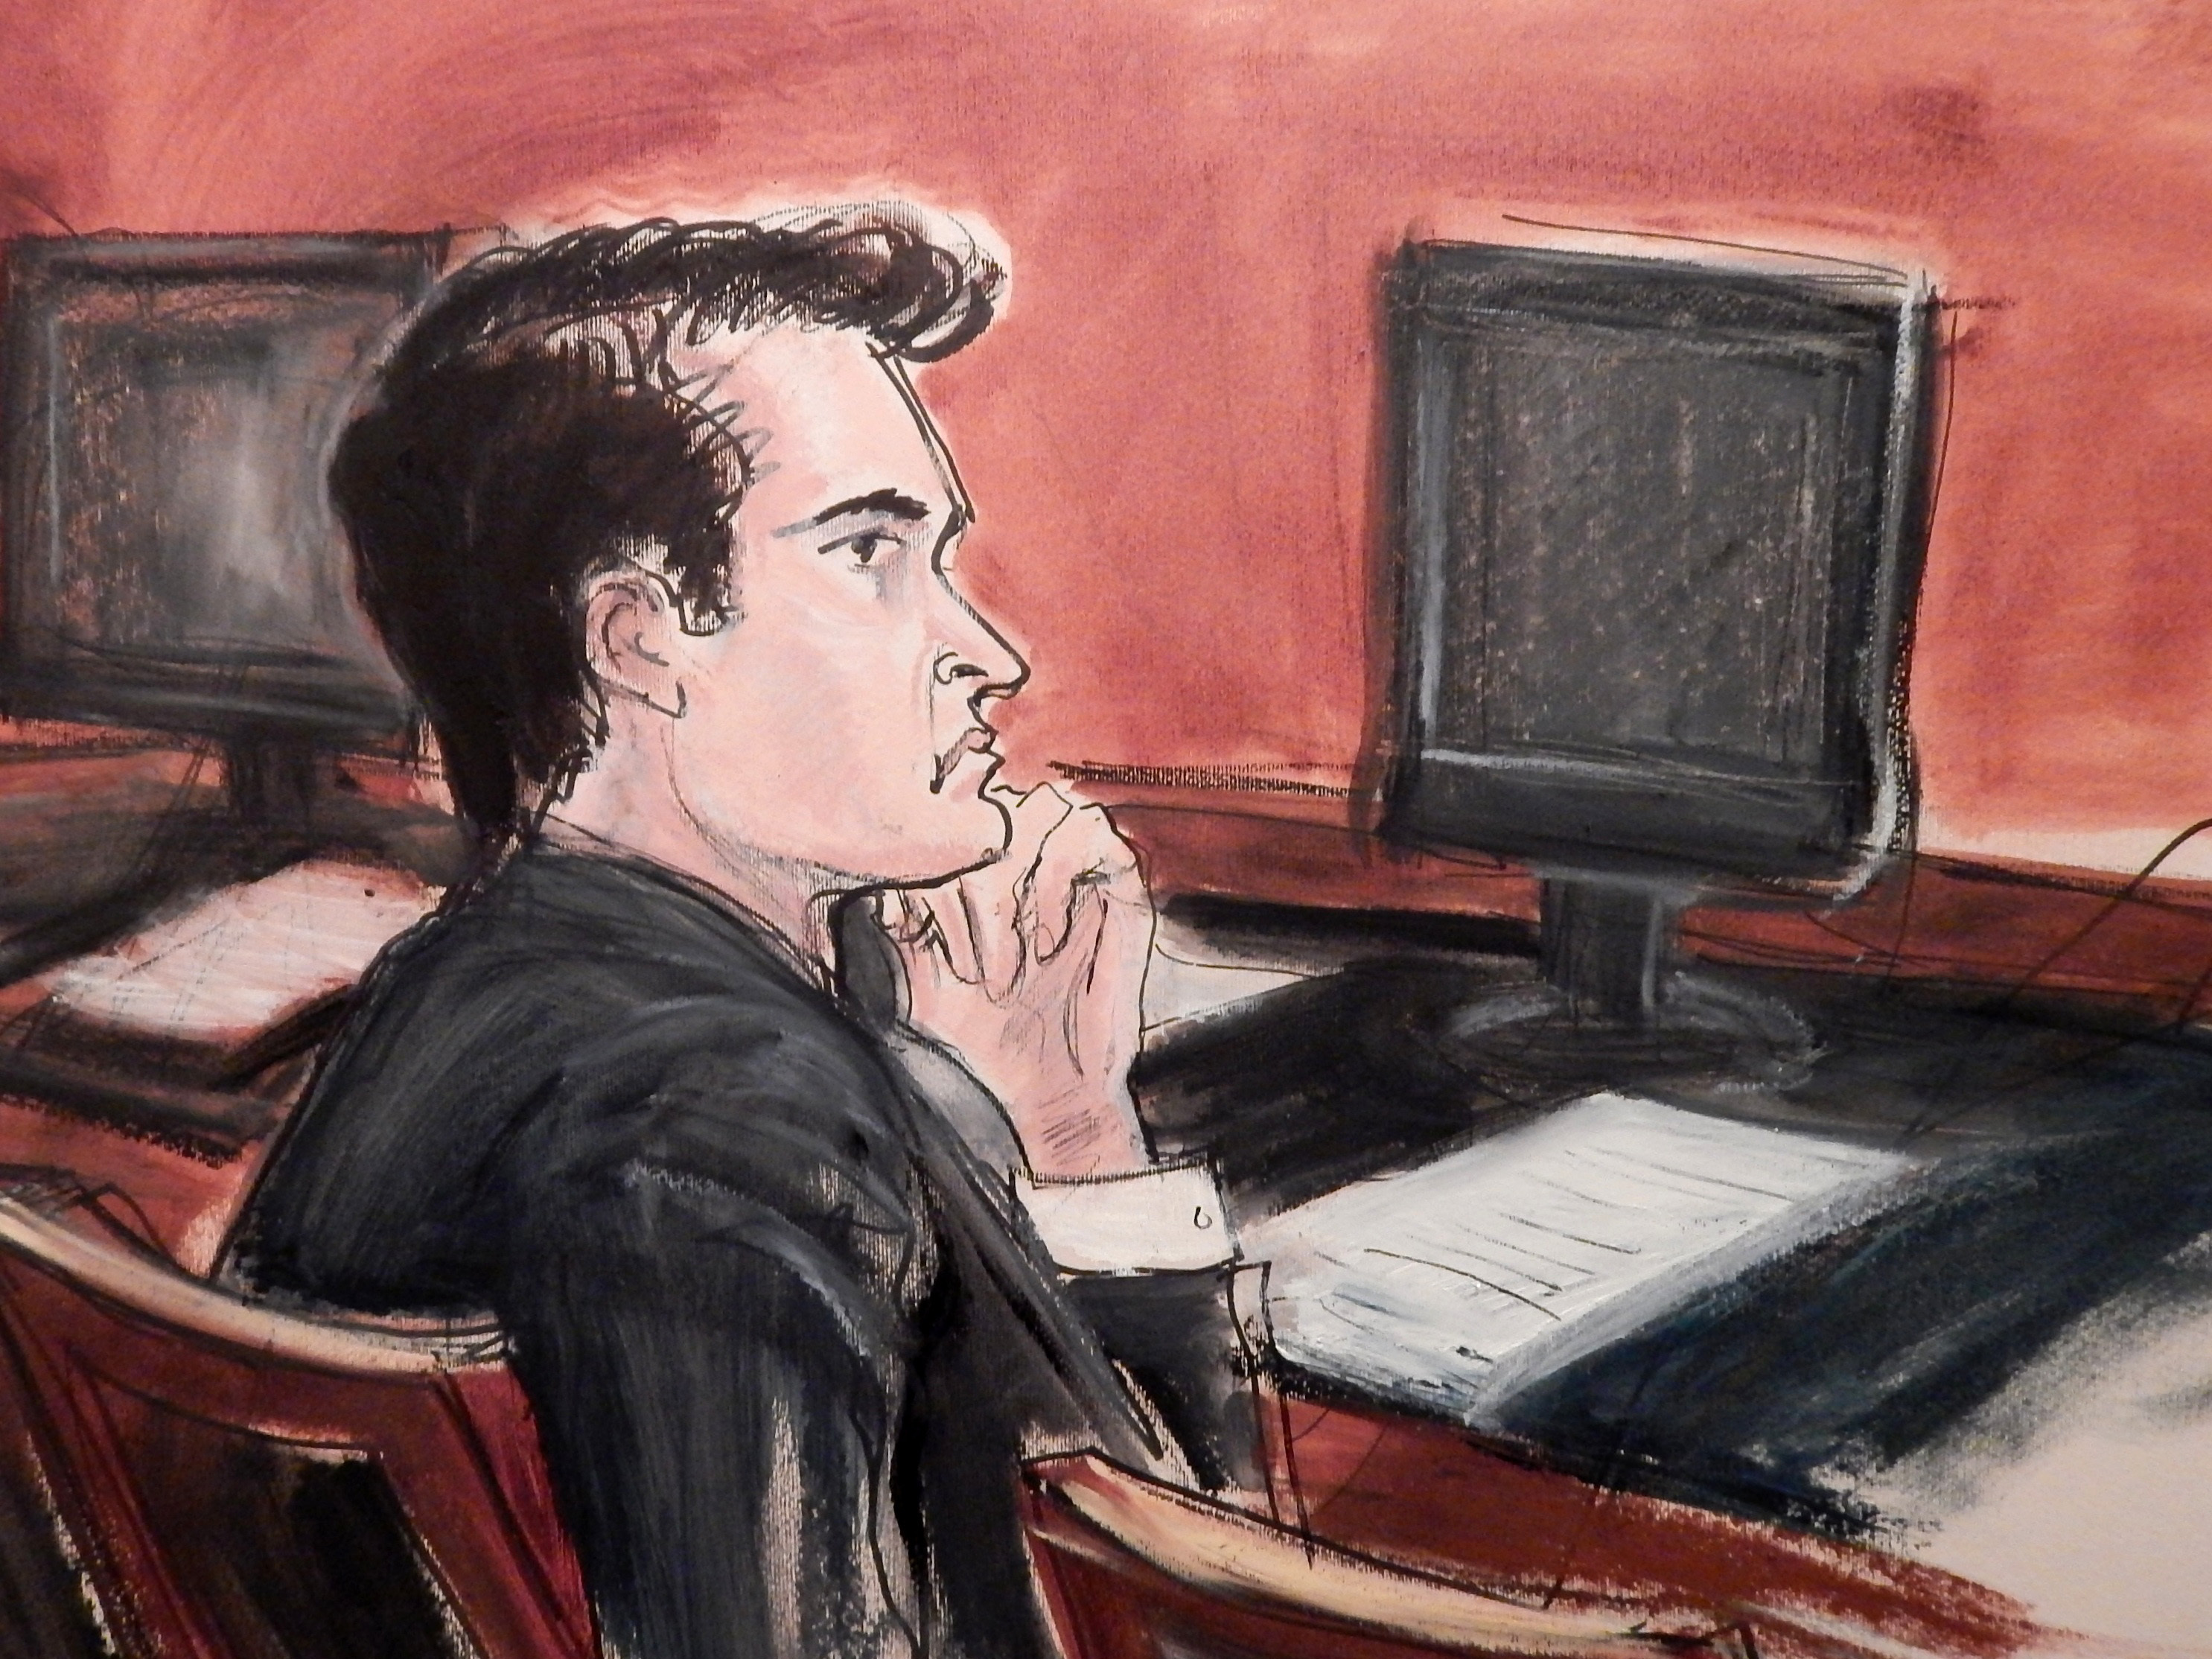 Ross Ulbricht, Accused Of Operating Silk Road, Is Convicted Of Drug Charges